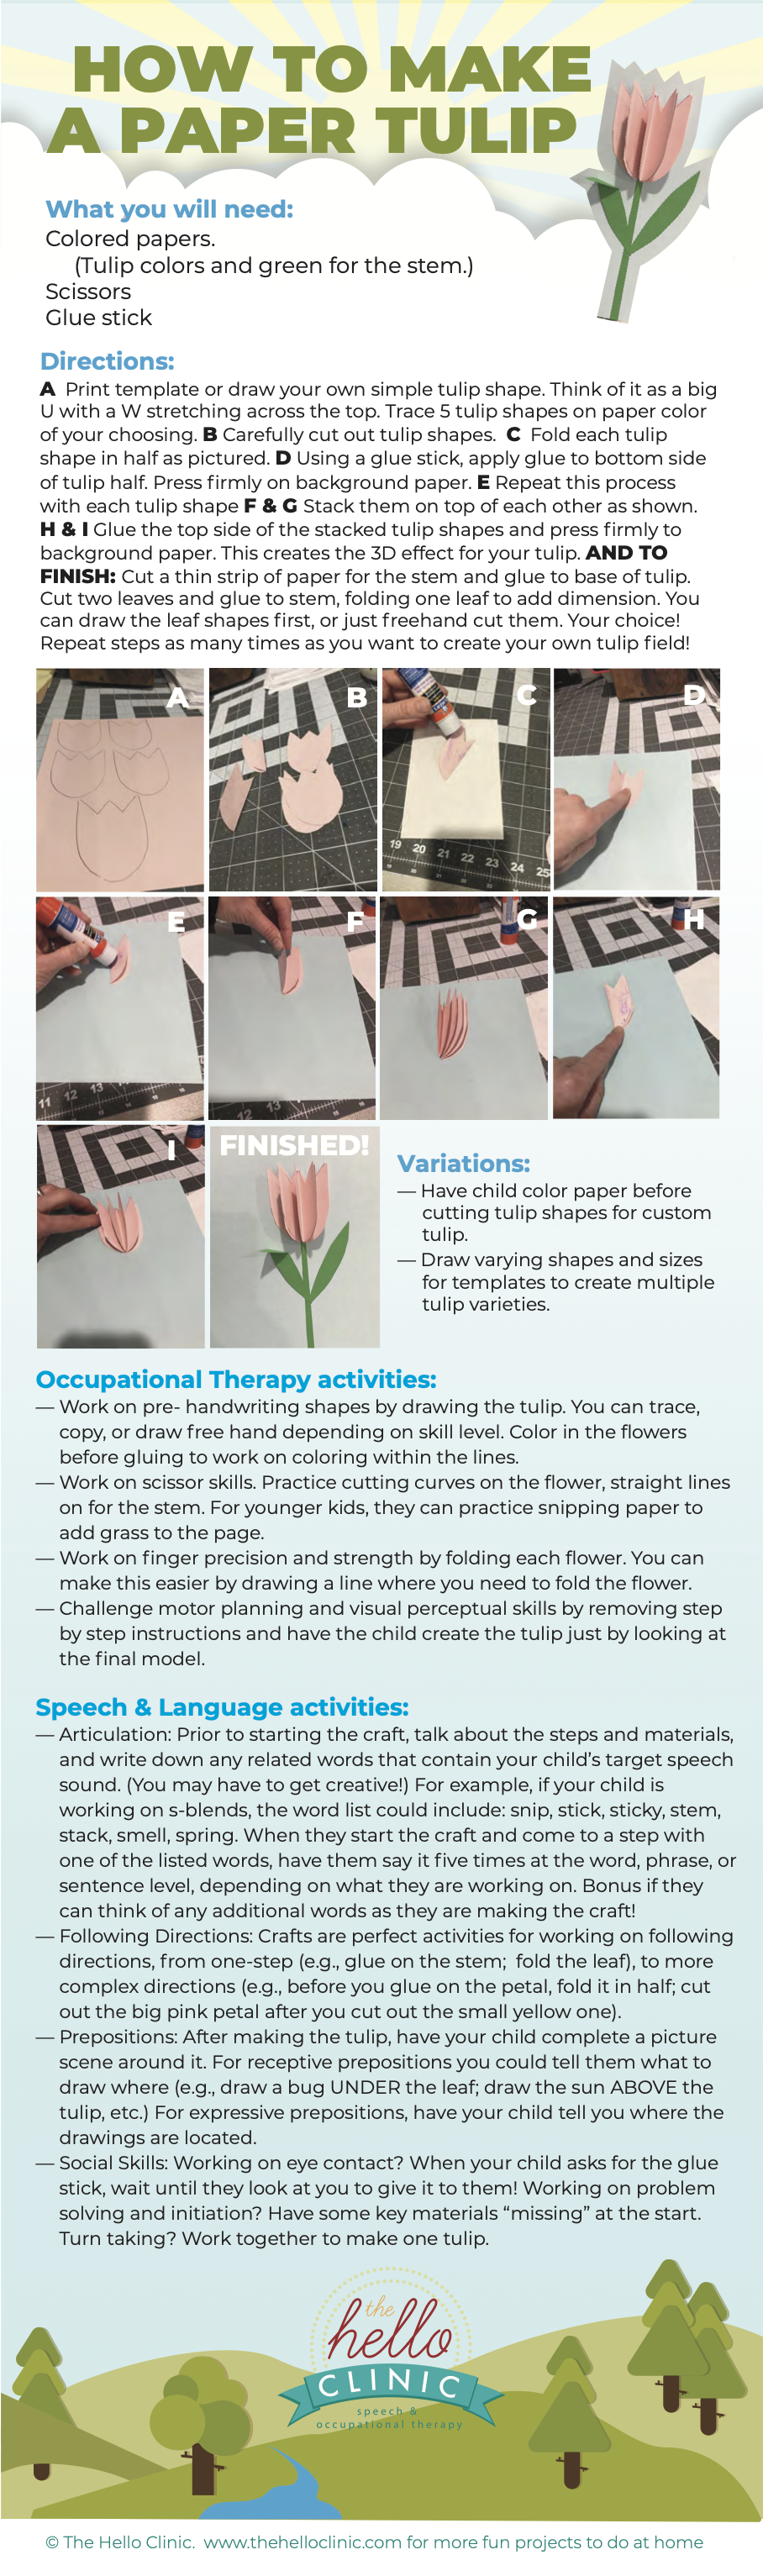 small image of how to make a paper tulip